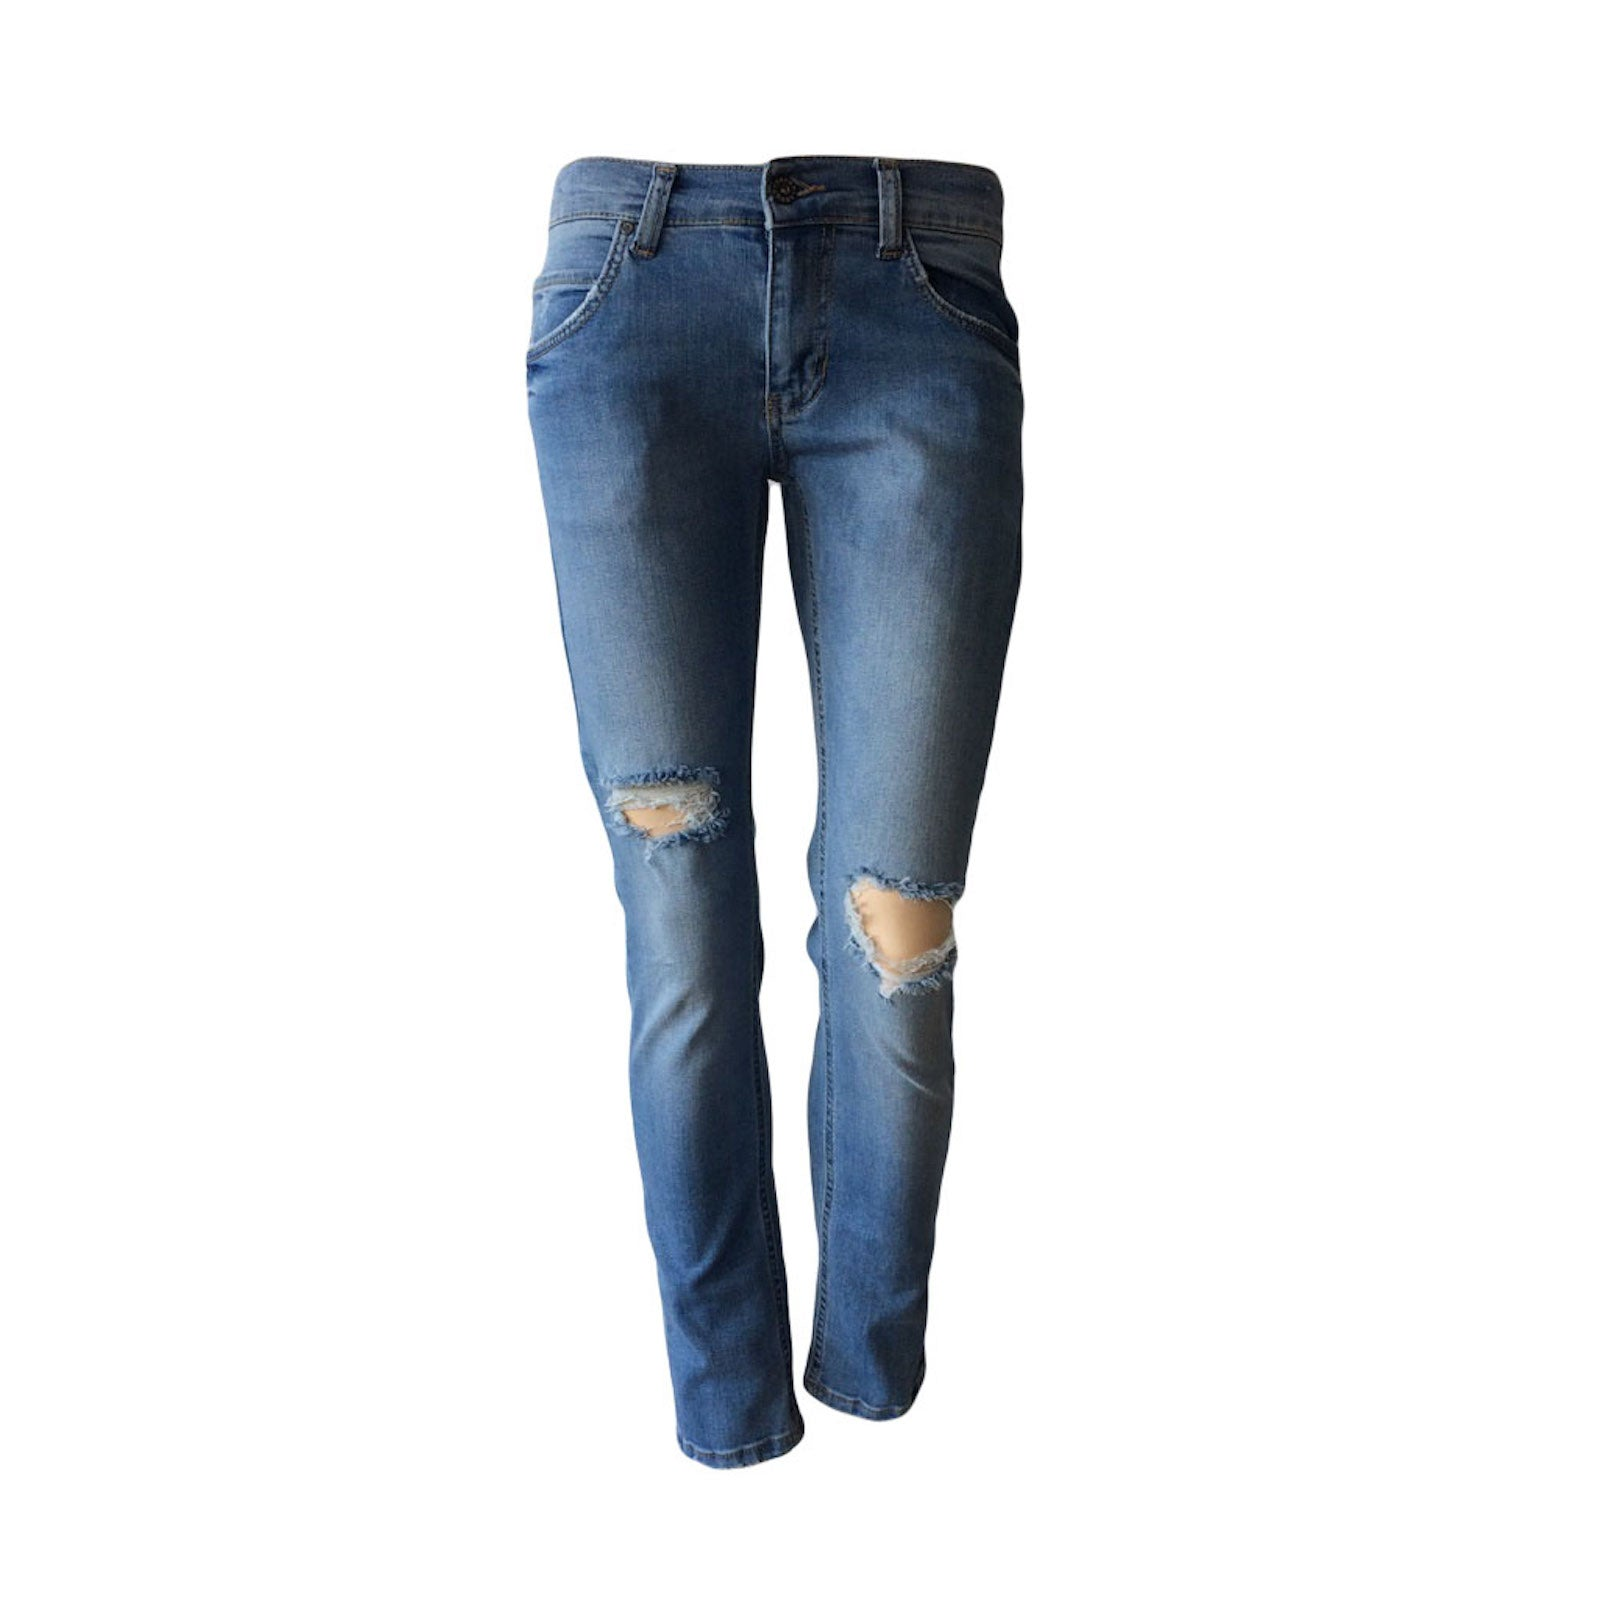 Designed to be worn a little relaxed these distressed jeans by Danish brand Grunt feel great on. The Space Damage Jeans will be your new spring/summer denim go-to